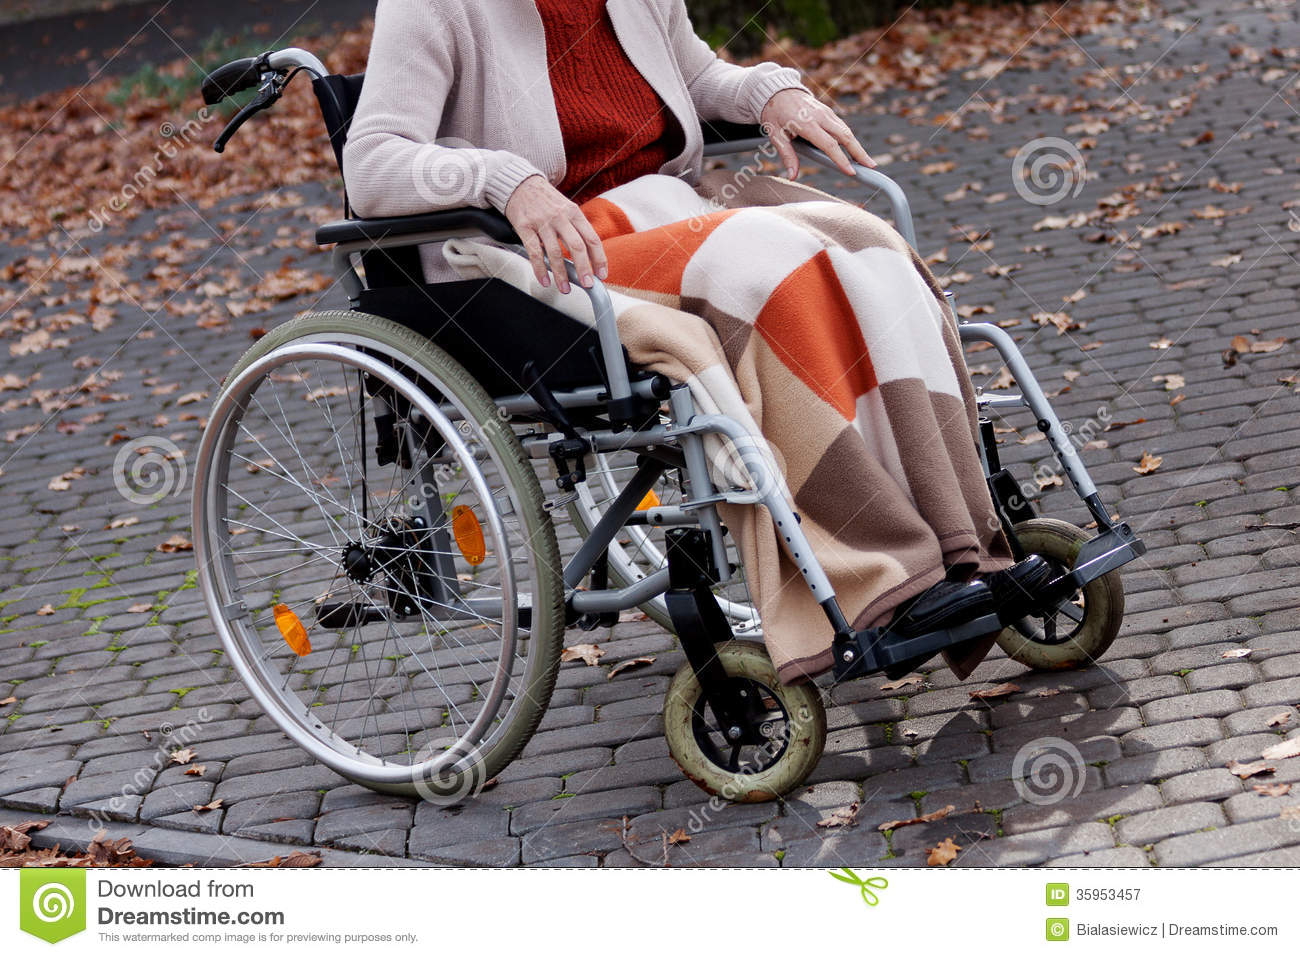 dating person in wheelchair Dating for disabled the forming of friendships and romantic relationships is a vital part of one's life, of being human loving relationships are an important part of the human condition.